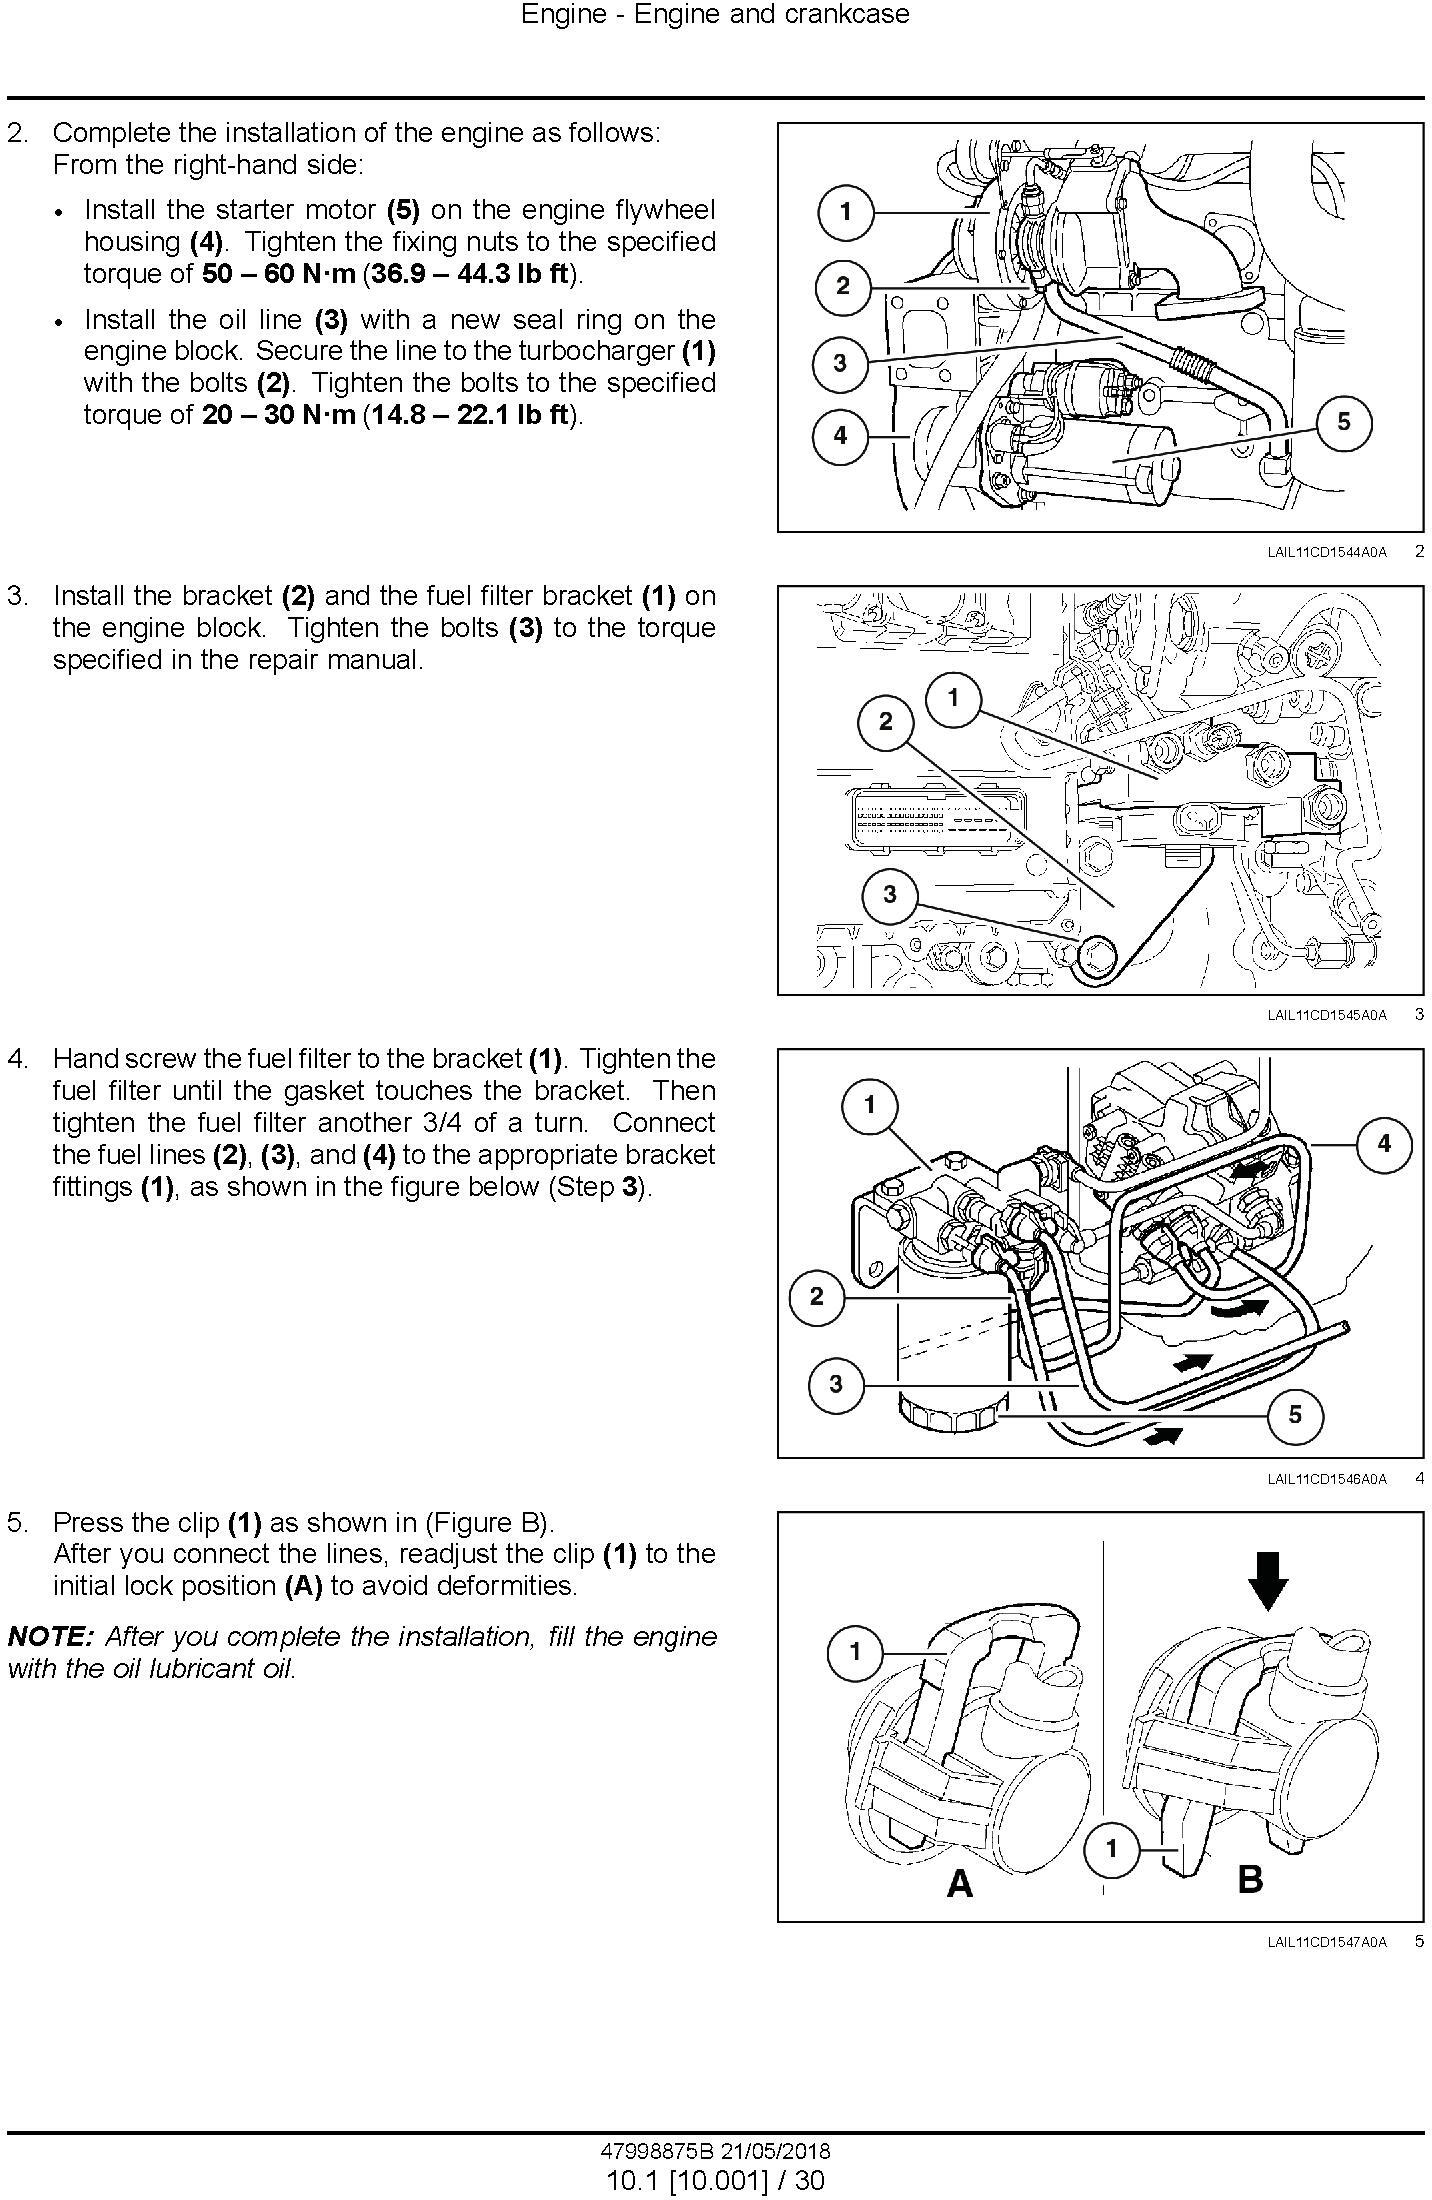 New Holland D150B XLT Crawler Dozer Service Manual (Brasil) - 2